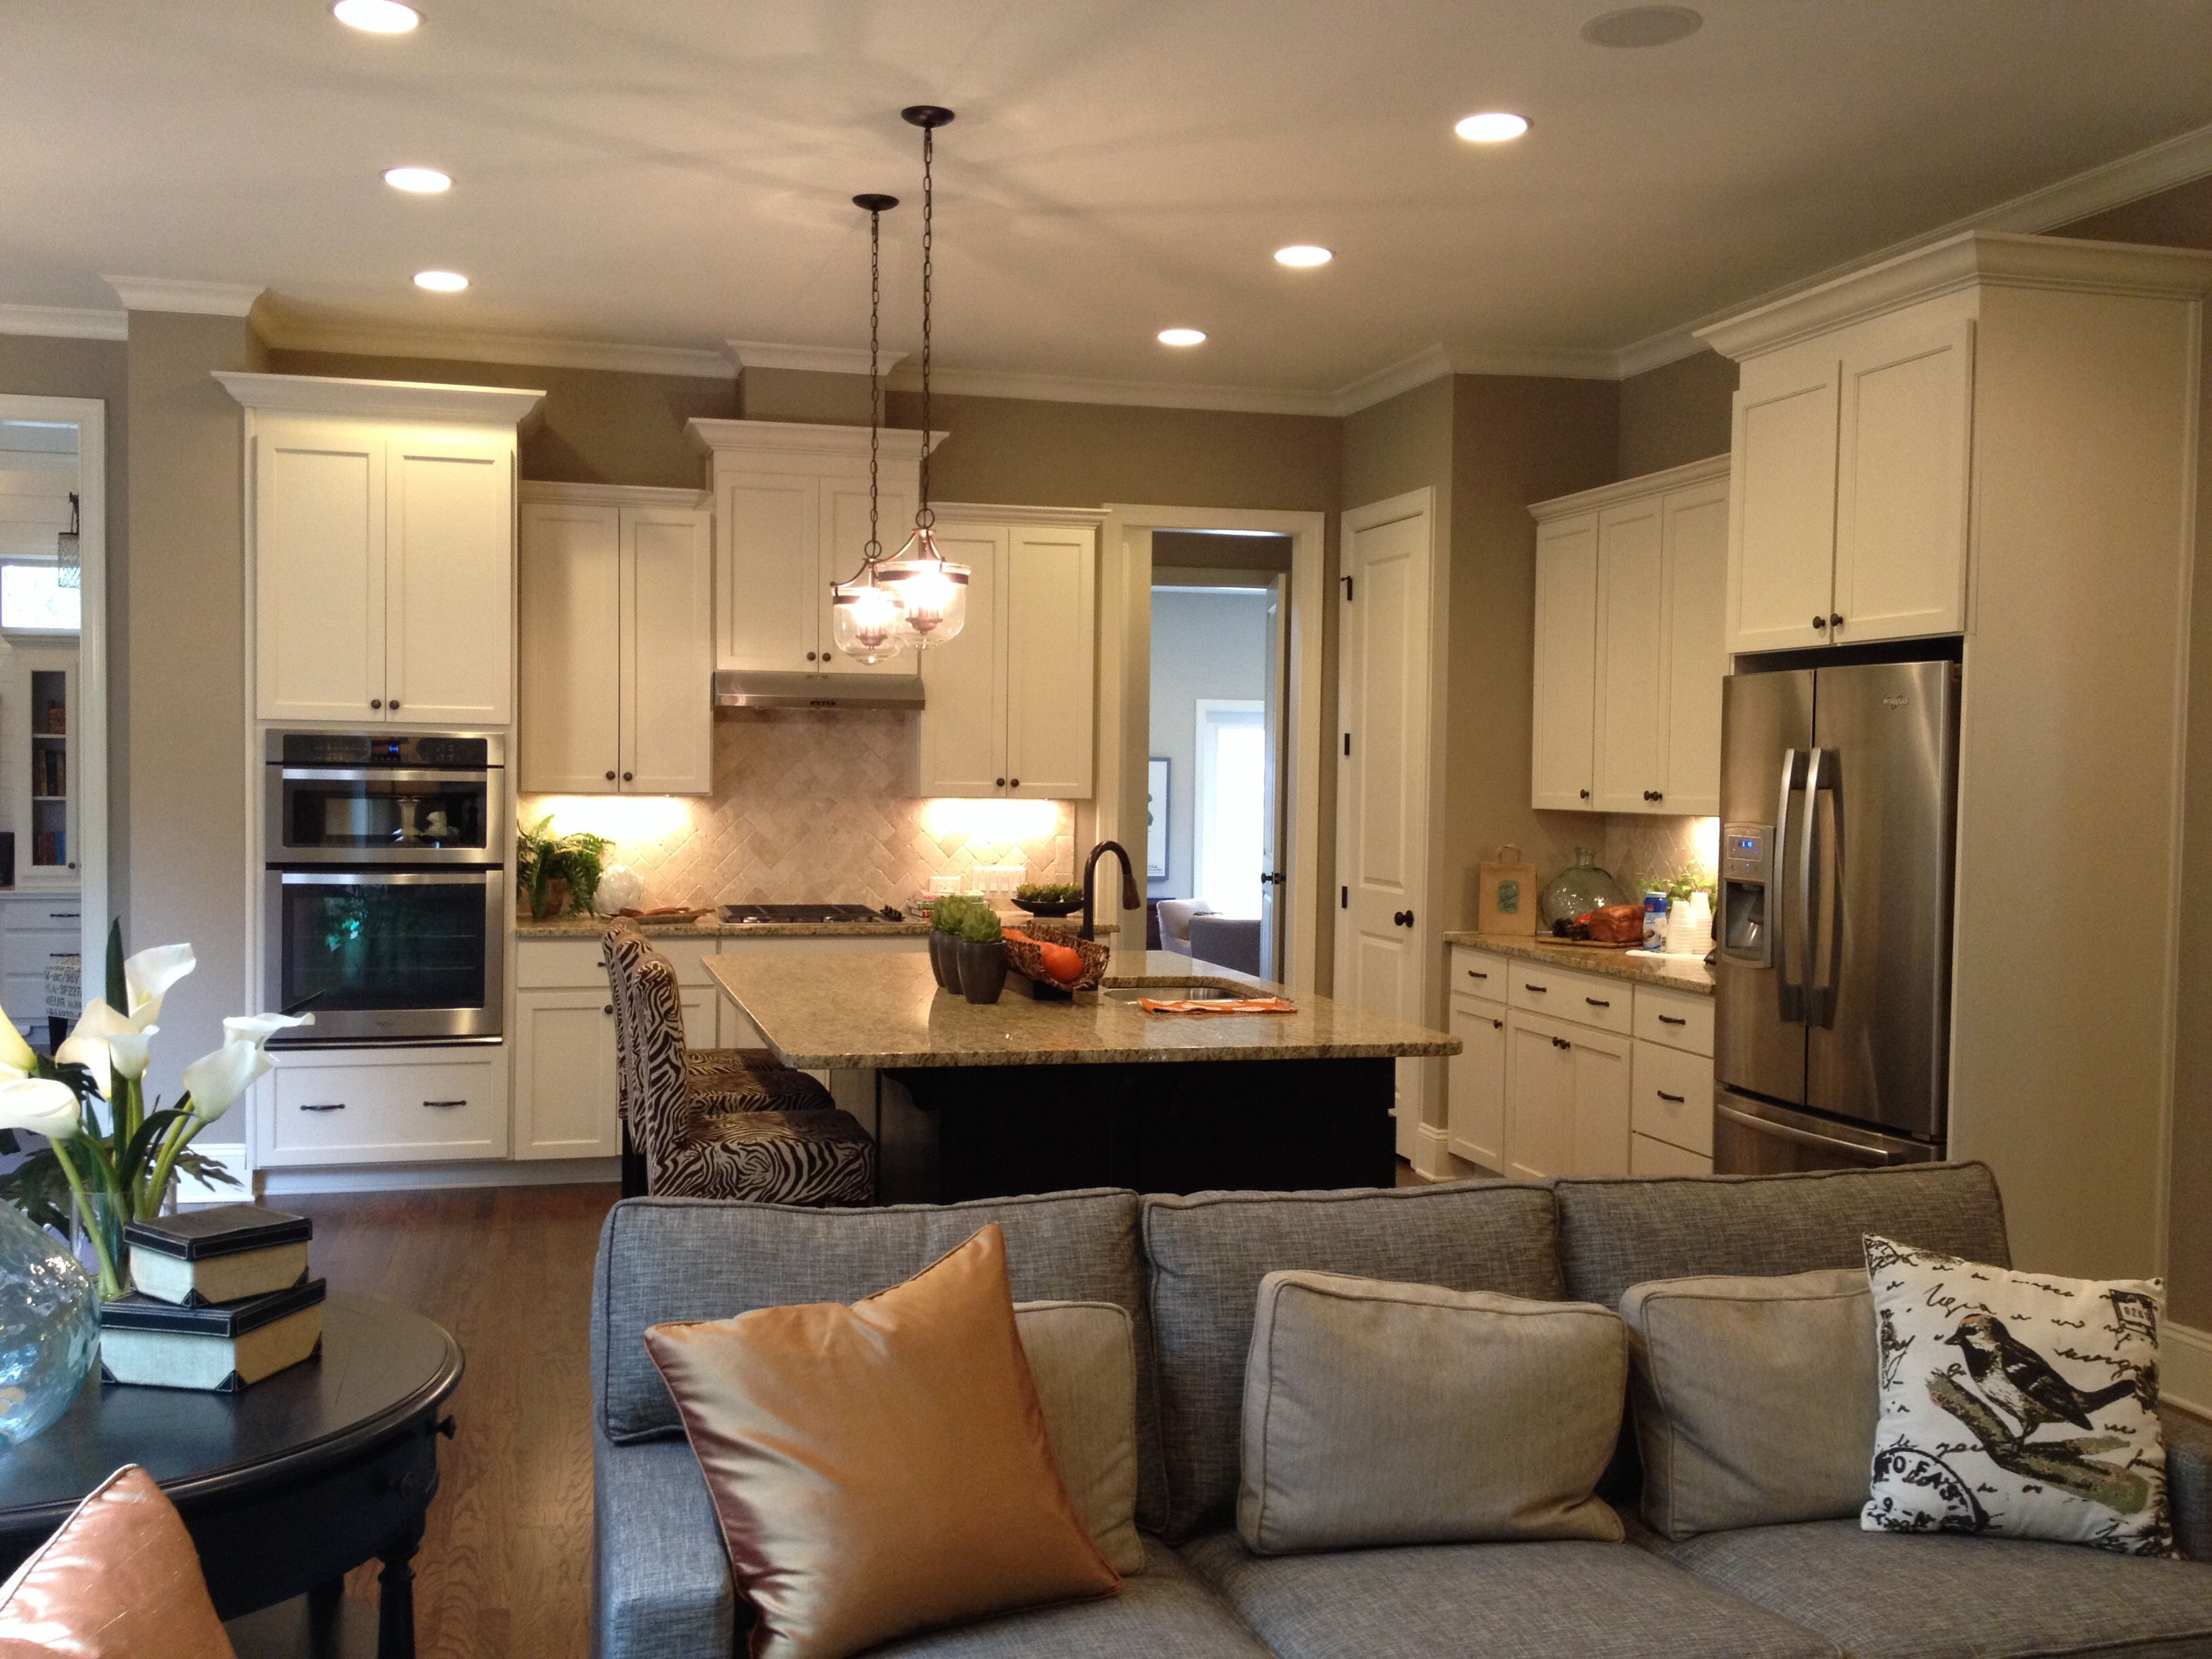 Open Concept Kitchens Dream Open Concept Kitchen With White Or Cream Cabinets And An